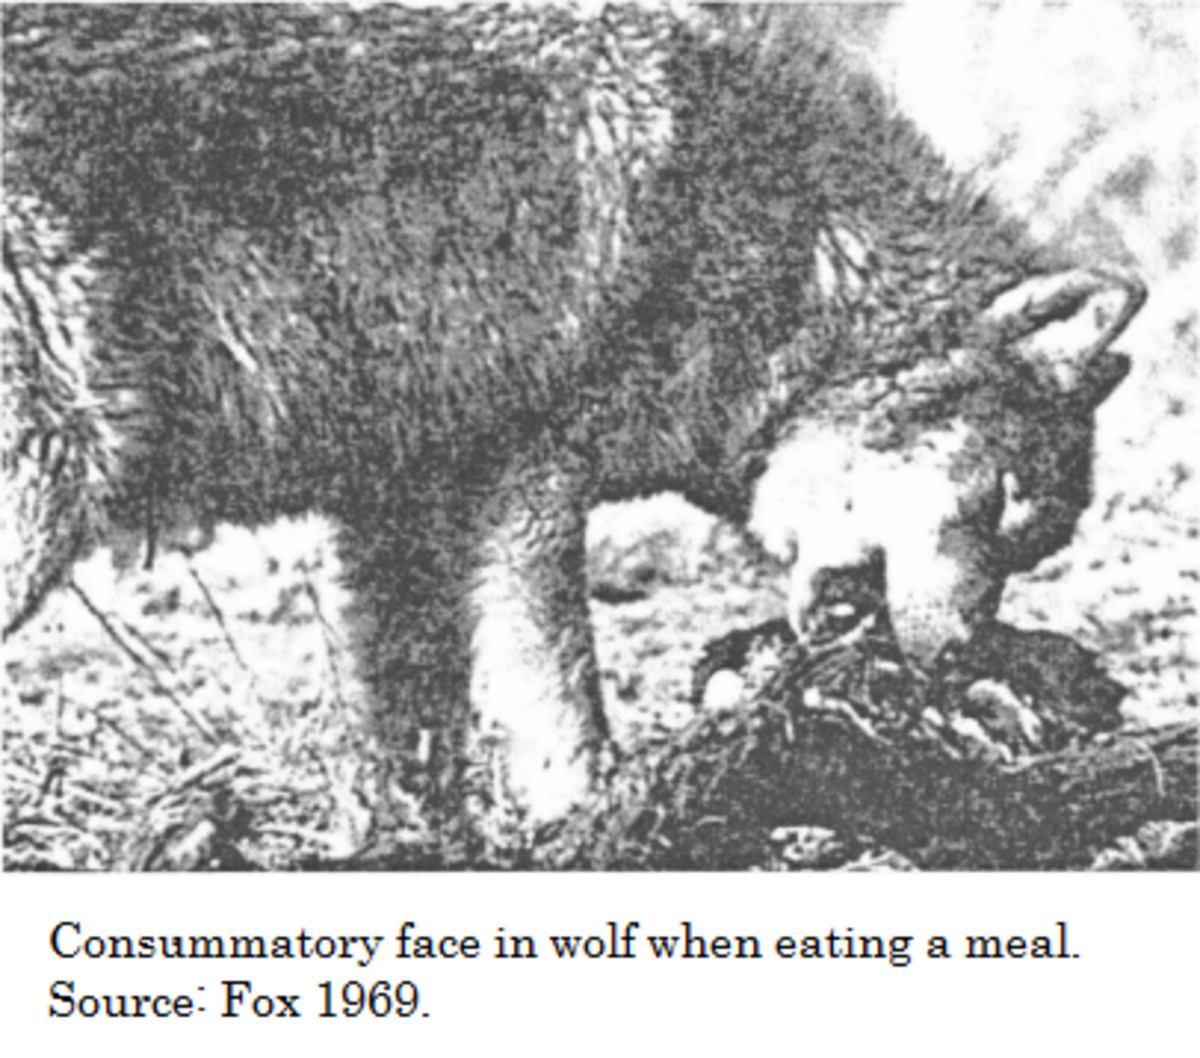 consummatory face in wolf while eating, fox 1969